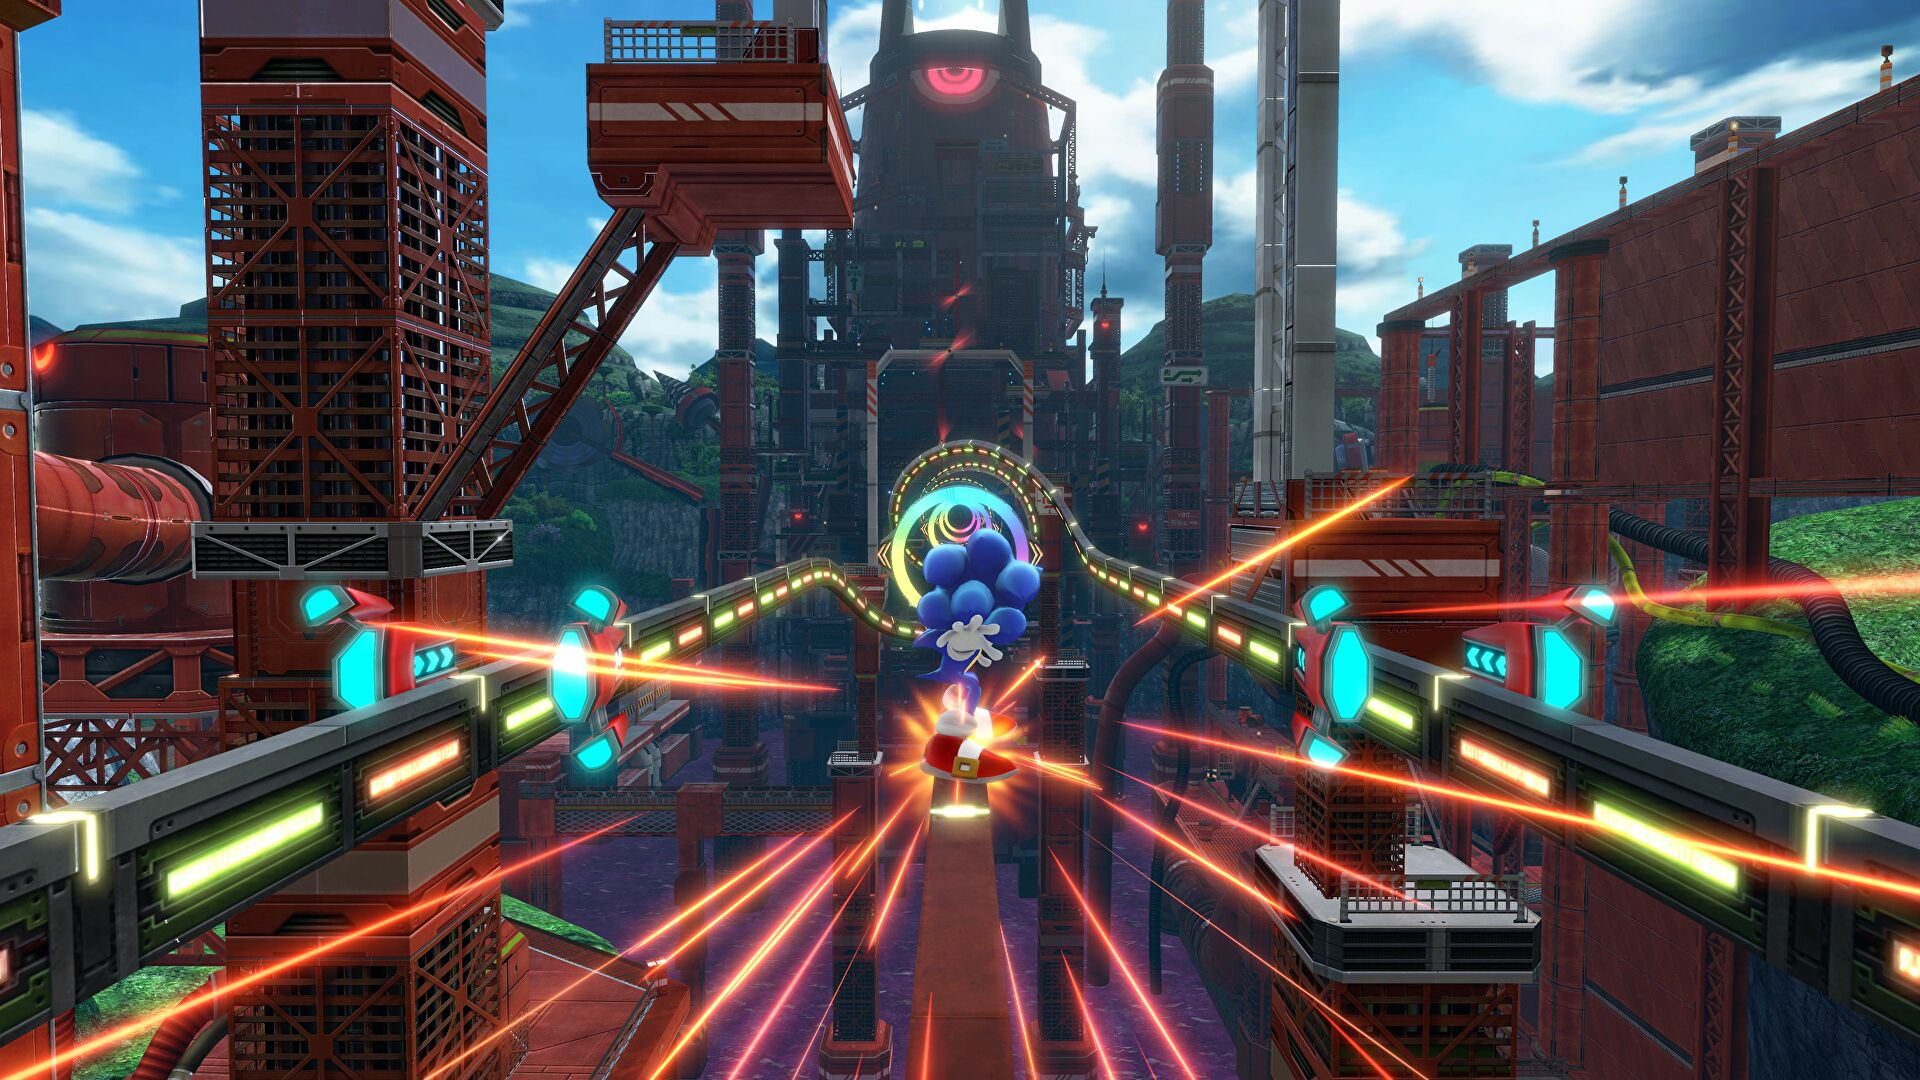 Is Sonic Colors: Ultimate a good game or just a good 3D Sonic game? - colors%207 251022612deedc875020.54204677